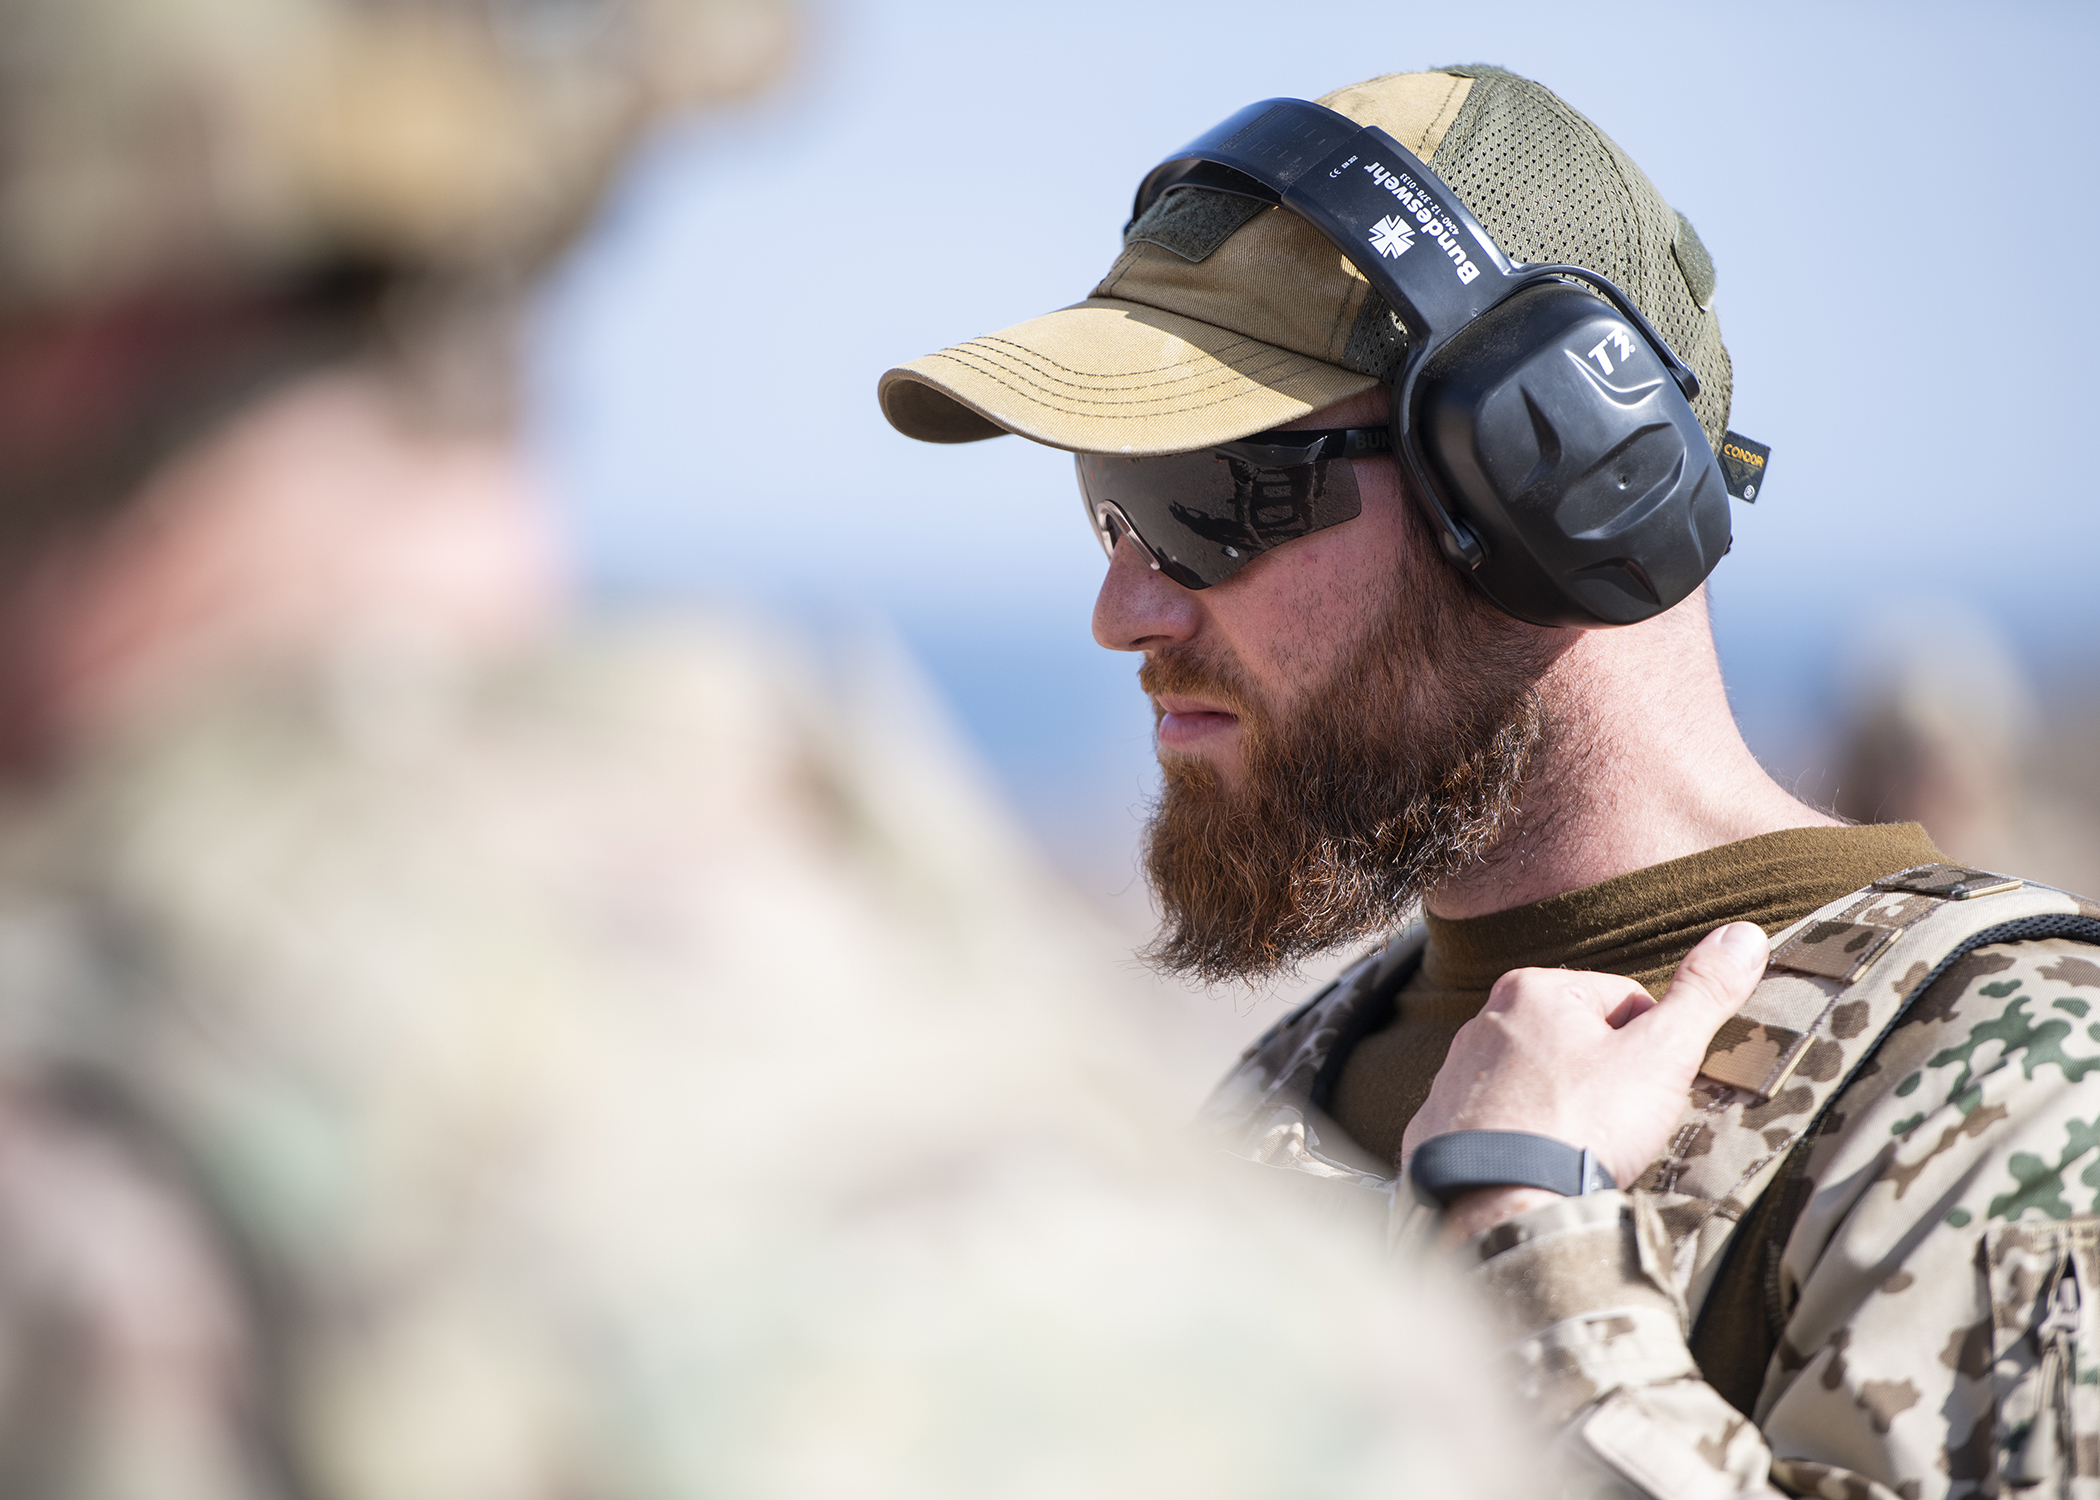 German Army Sgt. 1st Class Tobias Maul, information technology specialist and combat arms training instructor, assigned to Operation Atalanta, officiates the marksmanship portion of the German Armed Forces Badge for military proficiency at the Arta Range Complex, Djibouti, Jan. 17, 2019. Competing for the badge offered a unique opportunity to Soldiers and worked as an information exchange between the U.S. and Germany militaries. (U.S. Air Force photo by Tech. Sgt. Shawn Nickel)